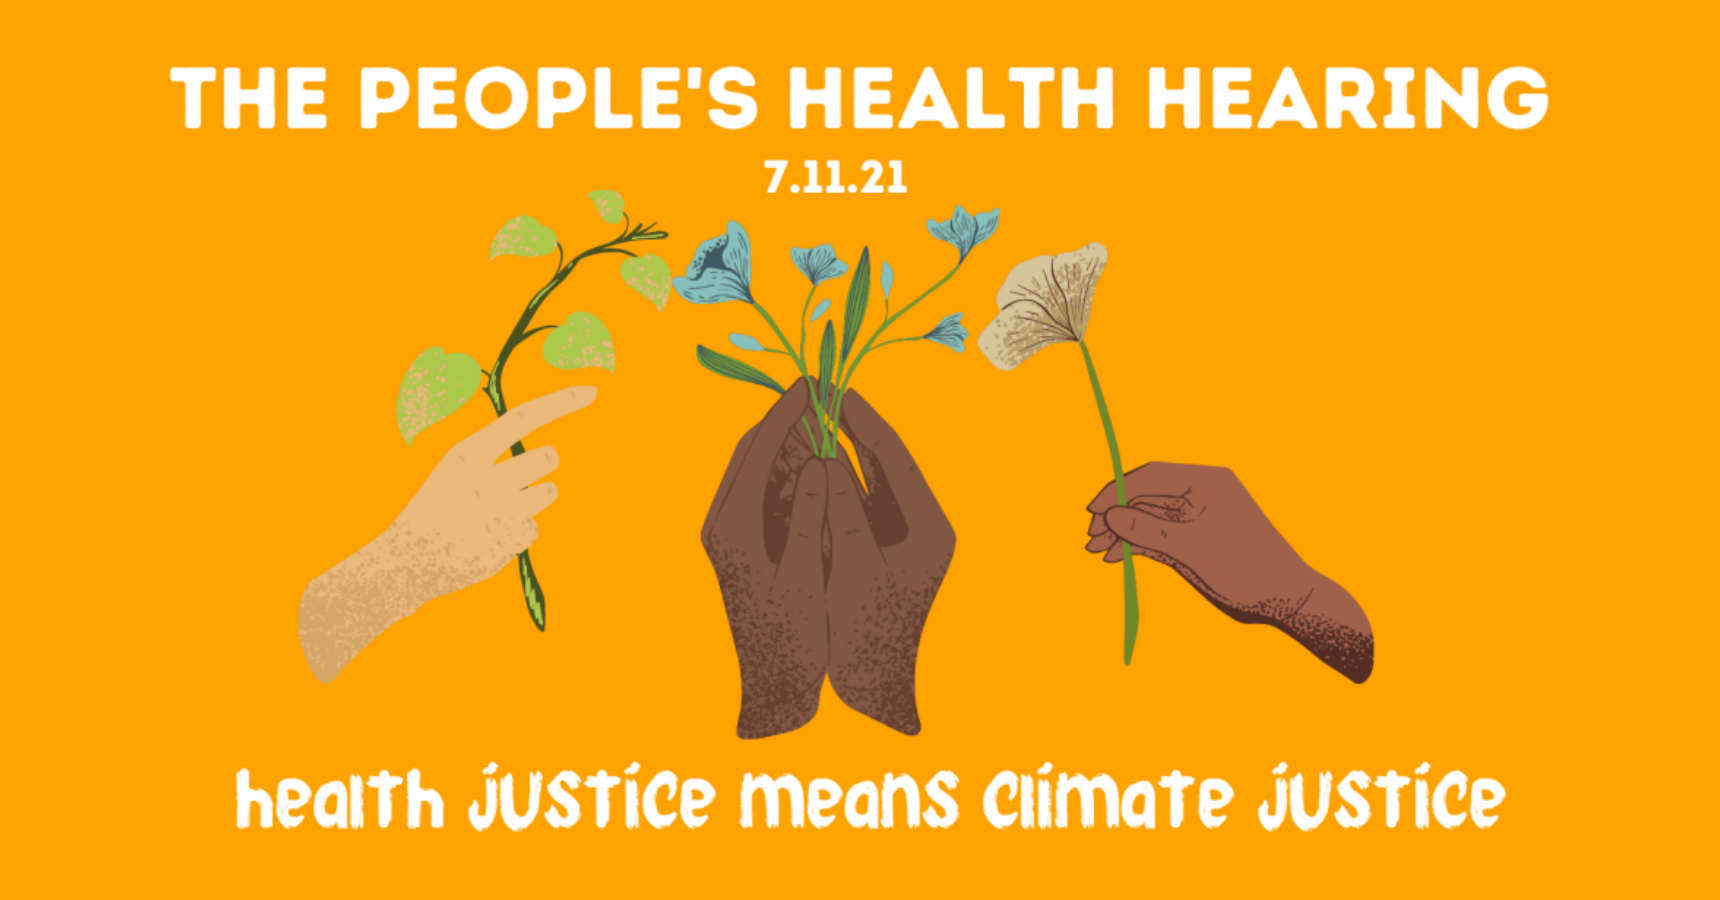 The People's Health Hearing 7.11.21: Health Justice Means Climate Justice